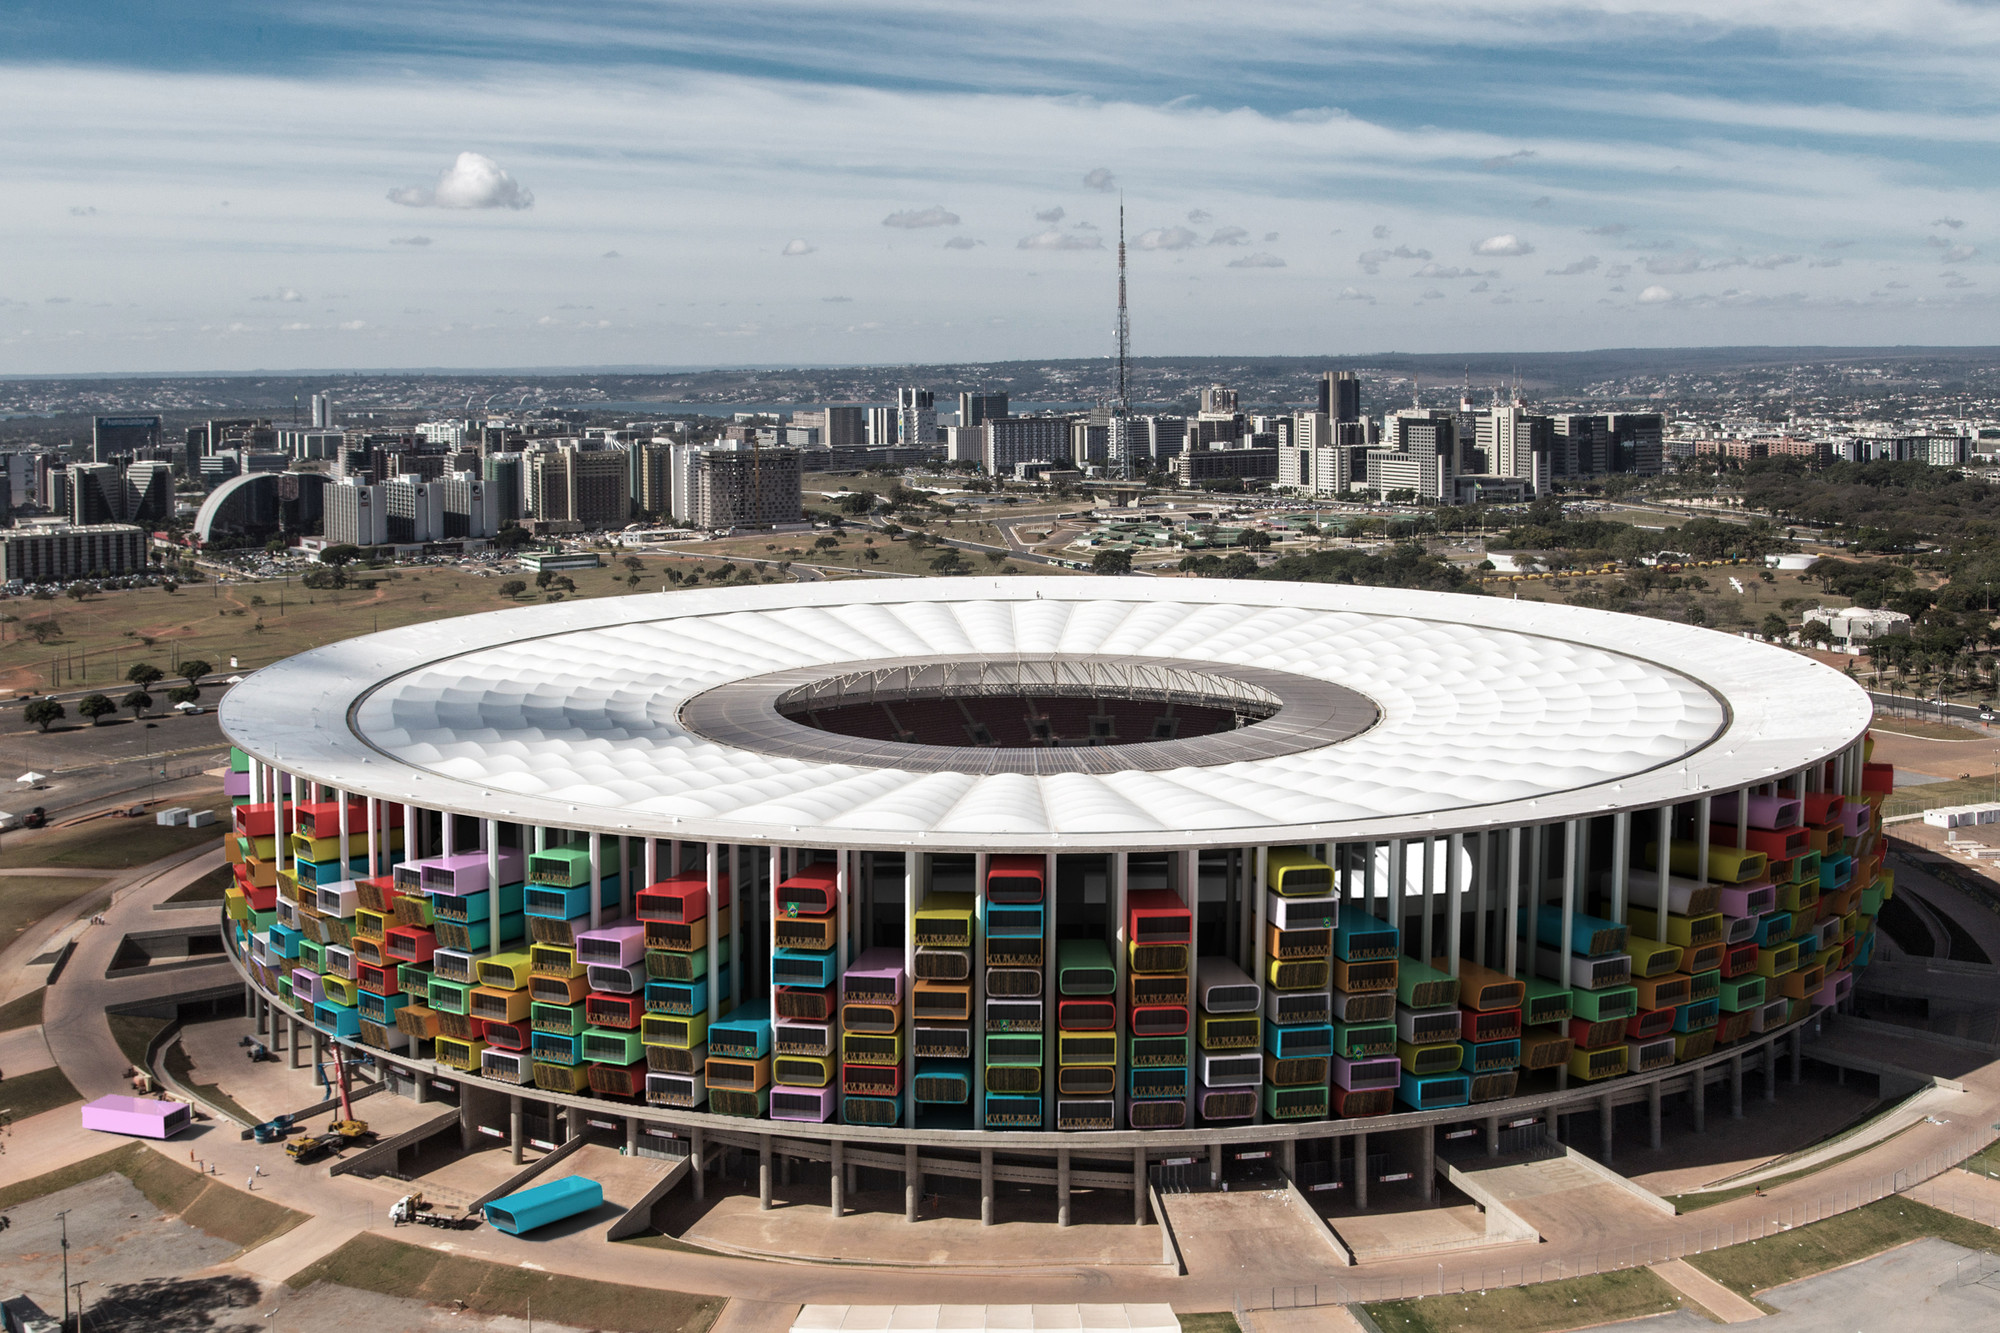 """Casa Futebol"" Proposes a Different Olympic Legacy For Brazil's Stadiums, Render of the National Stadium of Brazil, based on a photograph by Tomás Faquini"